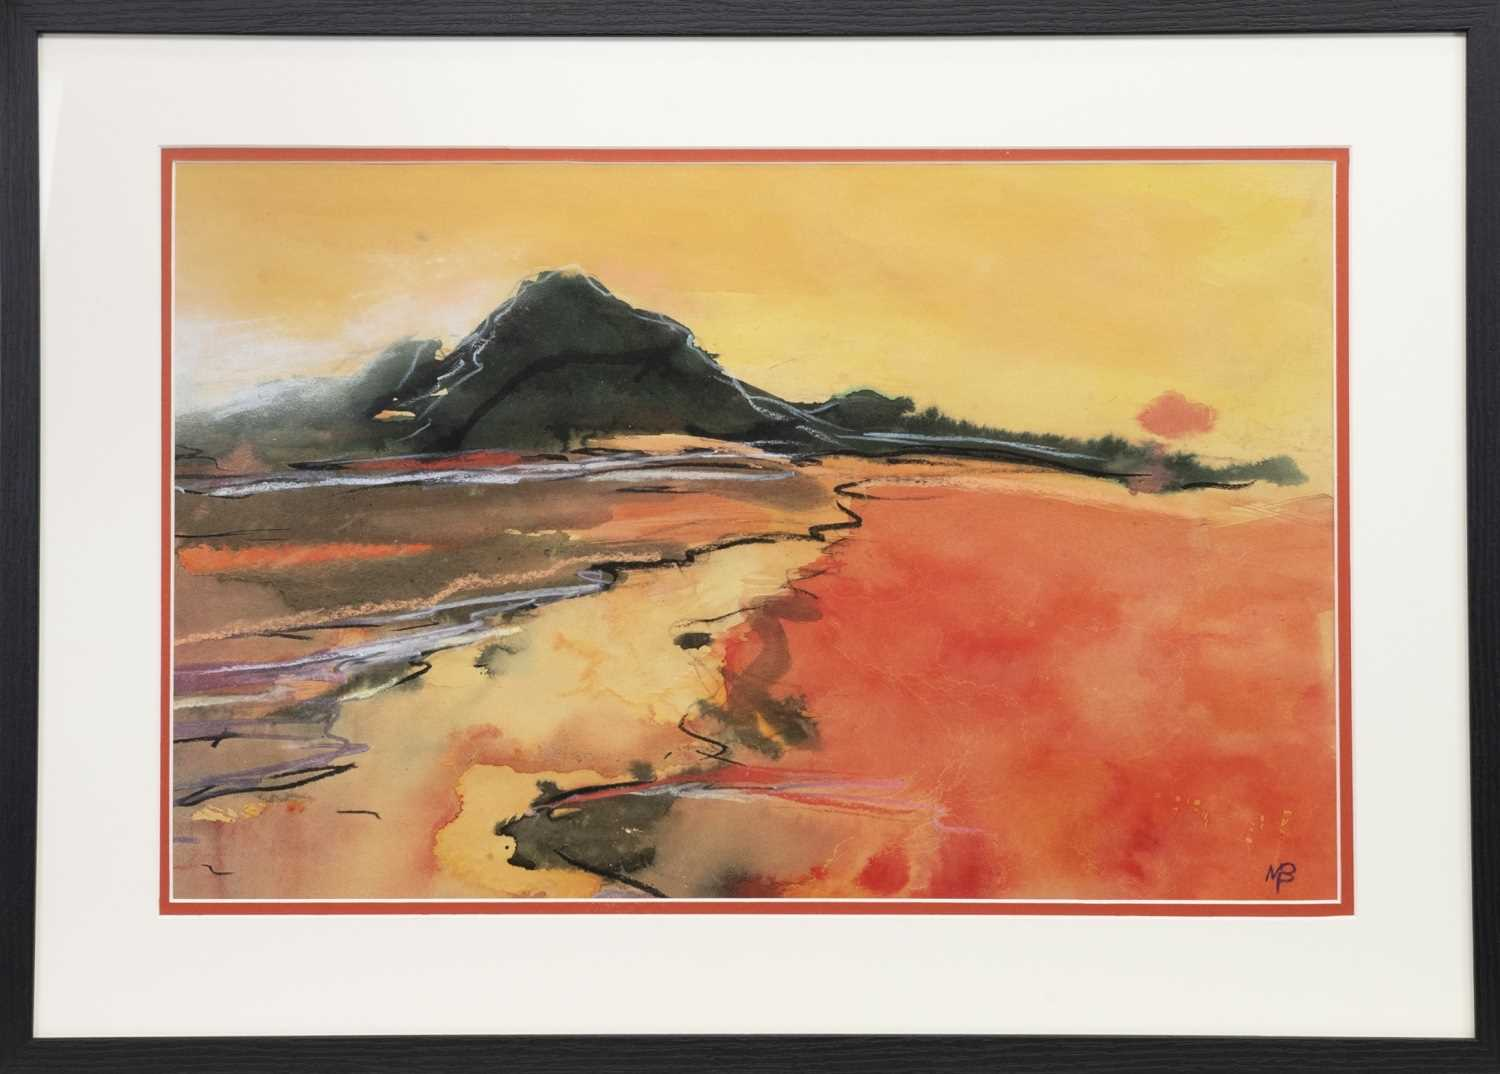 Lot 645-BUACHAILLE ETIVE MHOR, GLENCOE, AN INK AND PASTEL BY MAY BYRNE